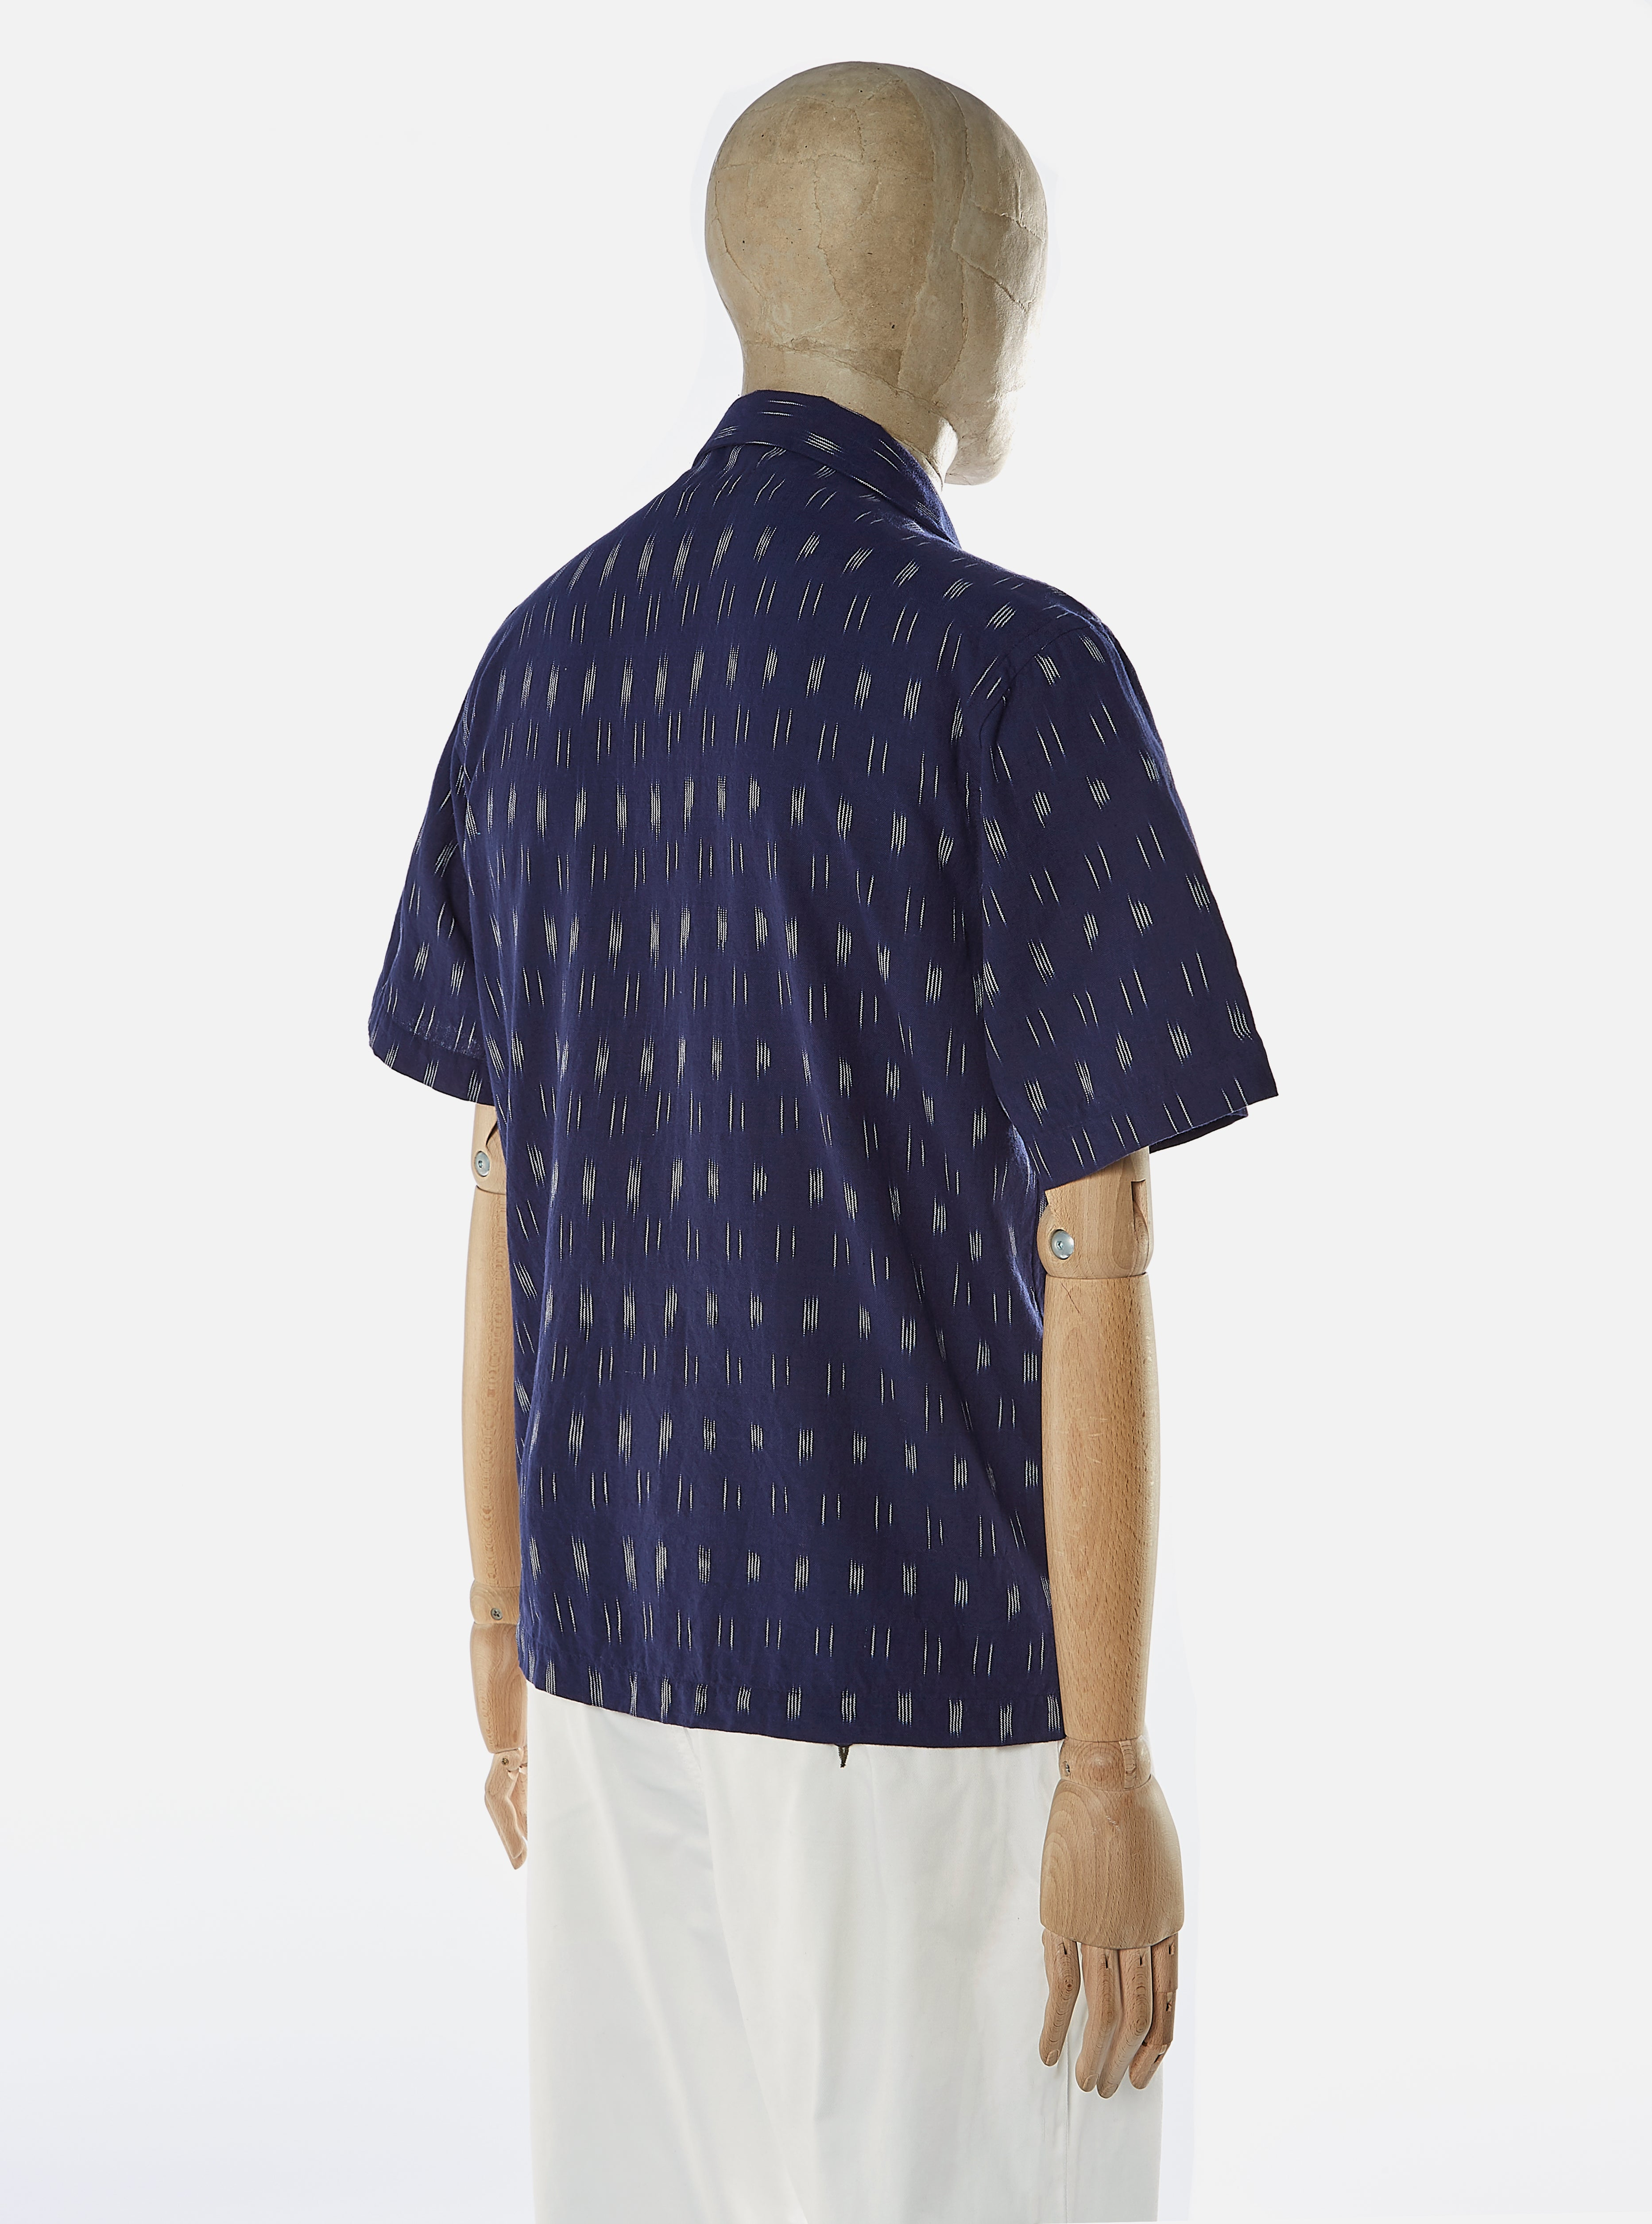 Universal Works Road Shirt in LNS Indigo Handloom Ikat